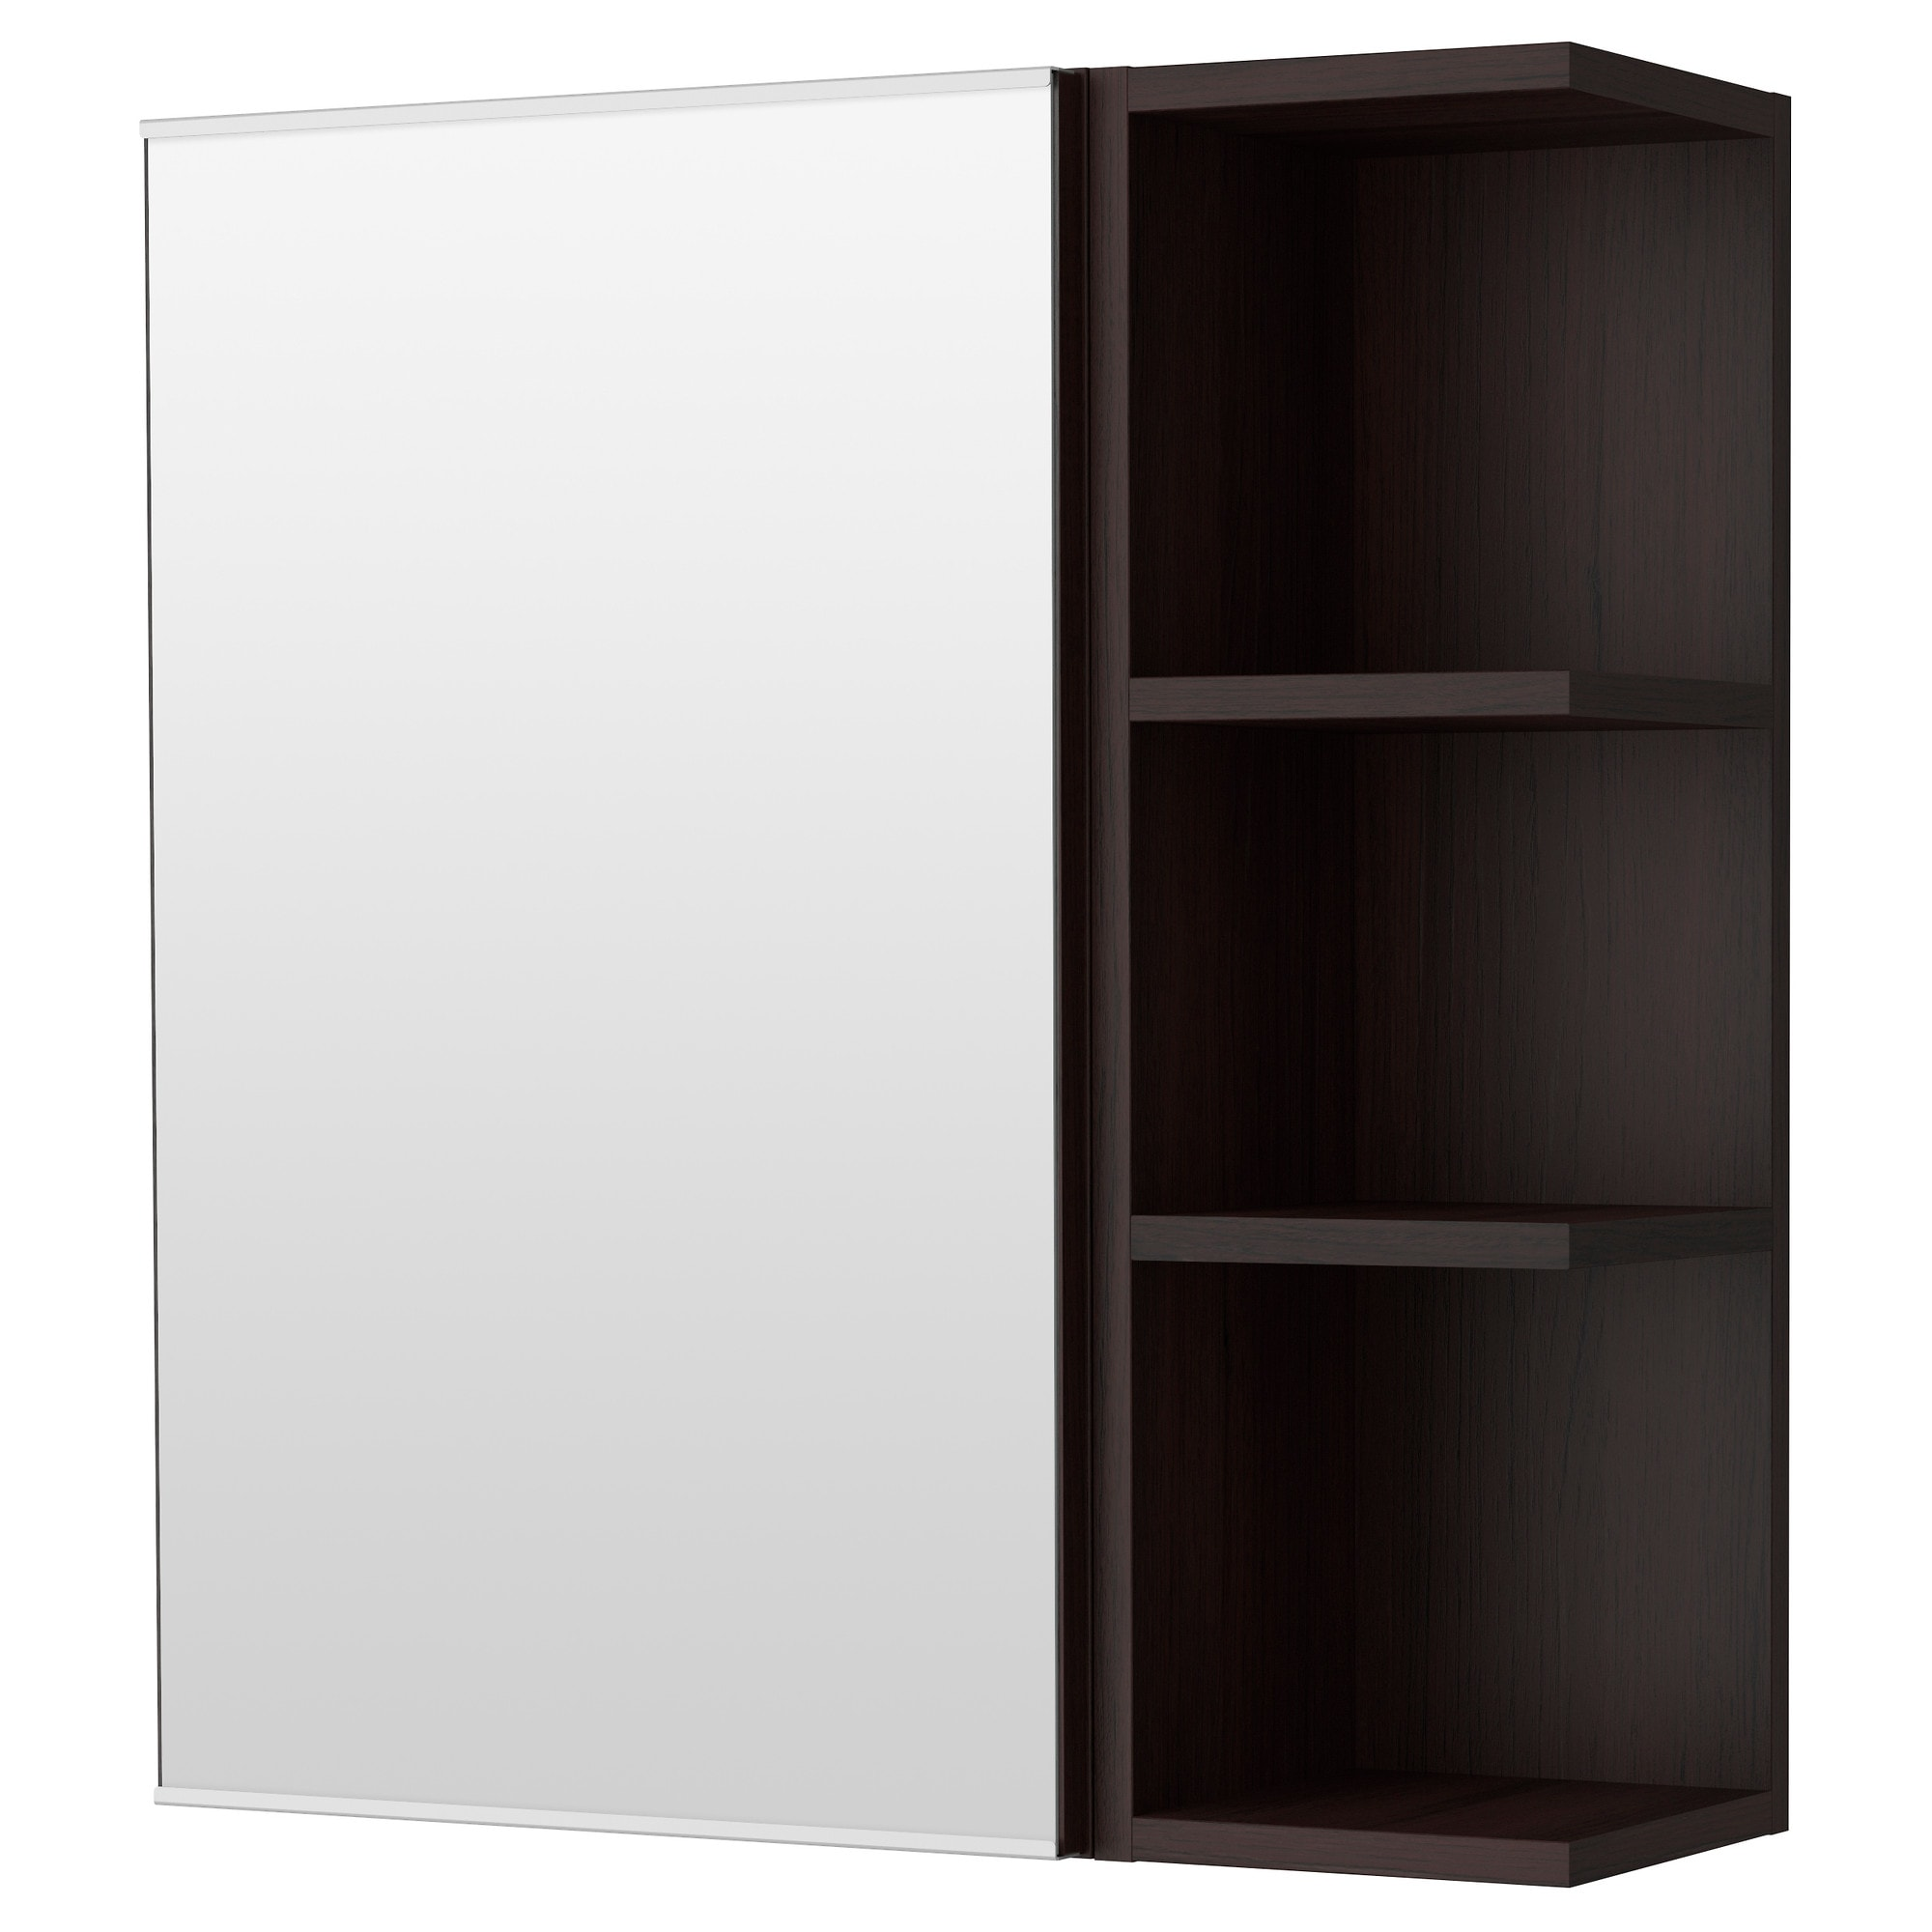 LILLNGEN Mirror Cabinet 1 Door End Unit Black Brown Width 23